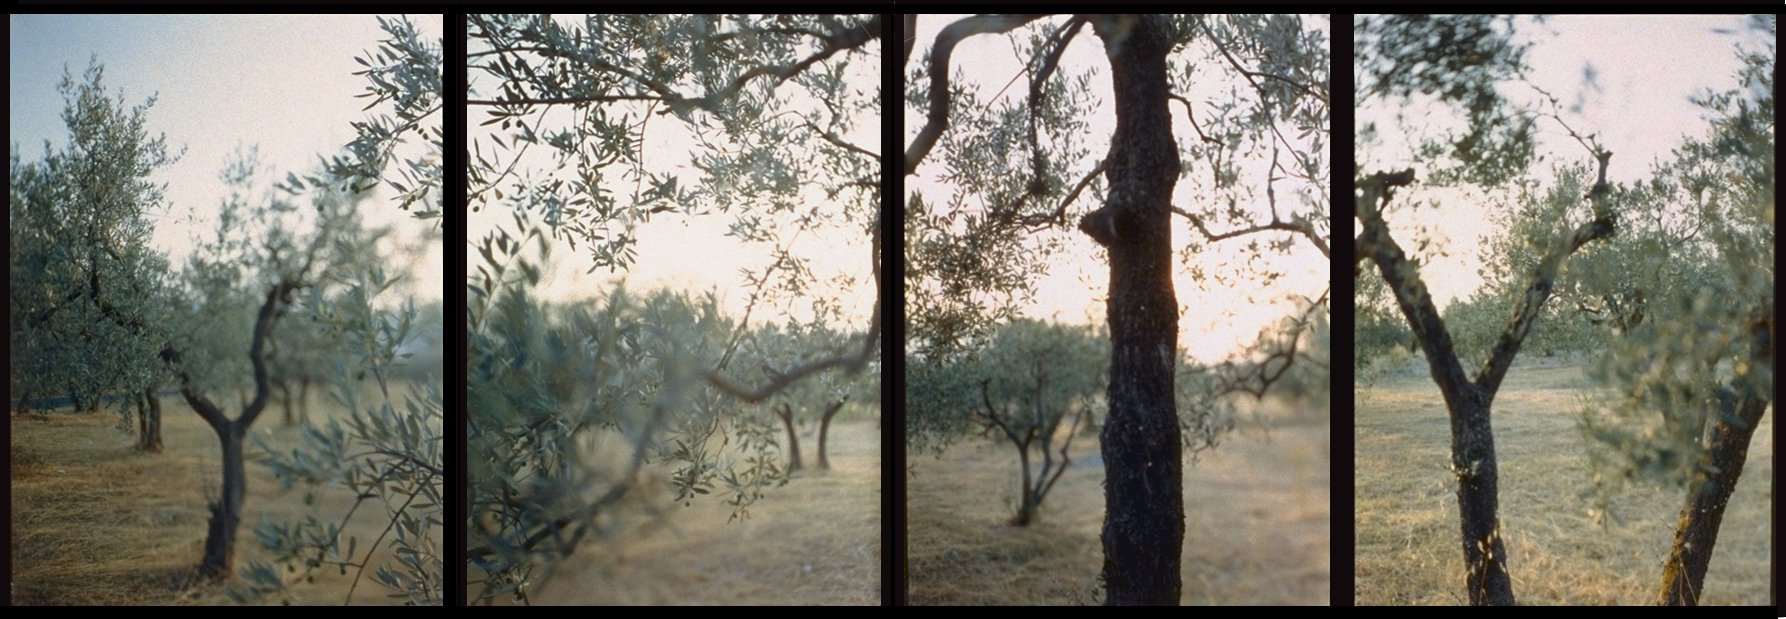 JoAnn Verburg, Olive Trees After the Heat, 1998, 40 inches x 10 feet, 4 chromogenic prints, edition of 25, price on request